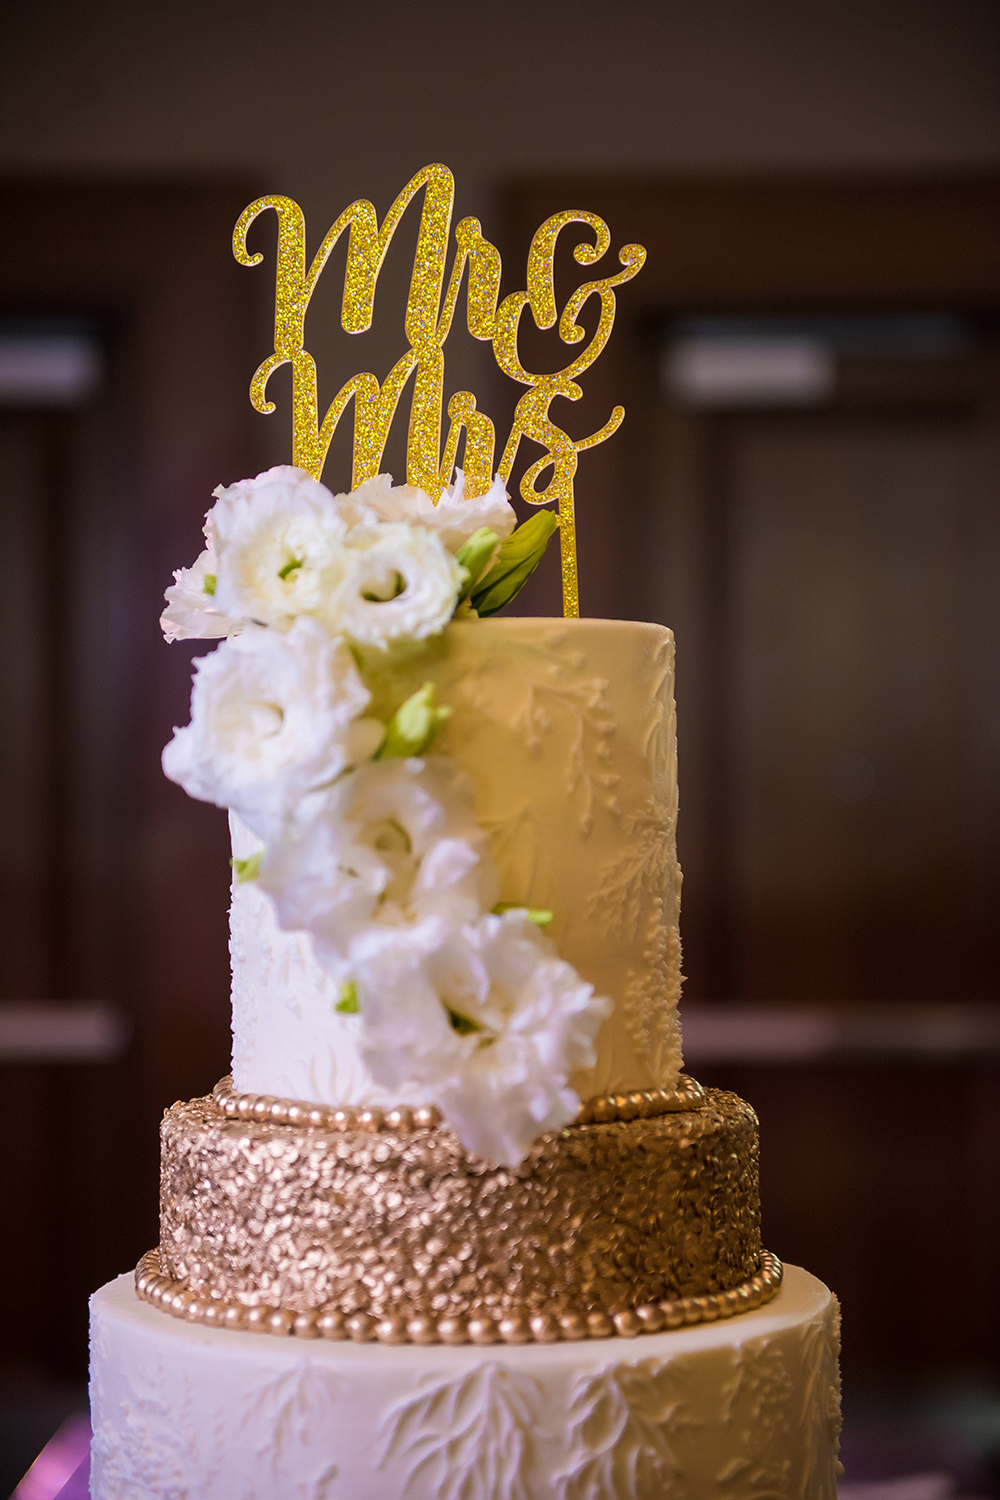 gold wedding cake topper, cakes by gina, houston baker